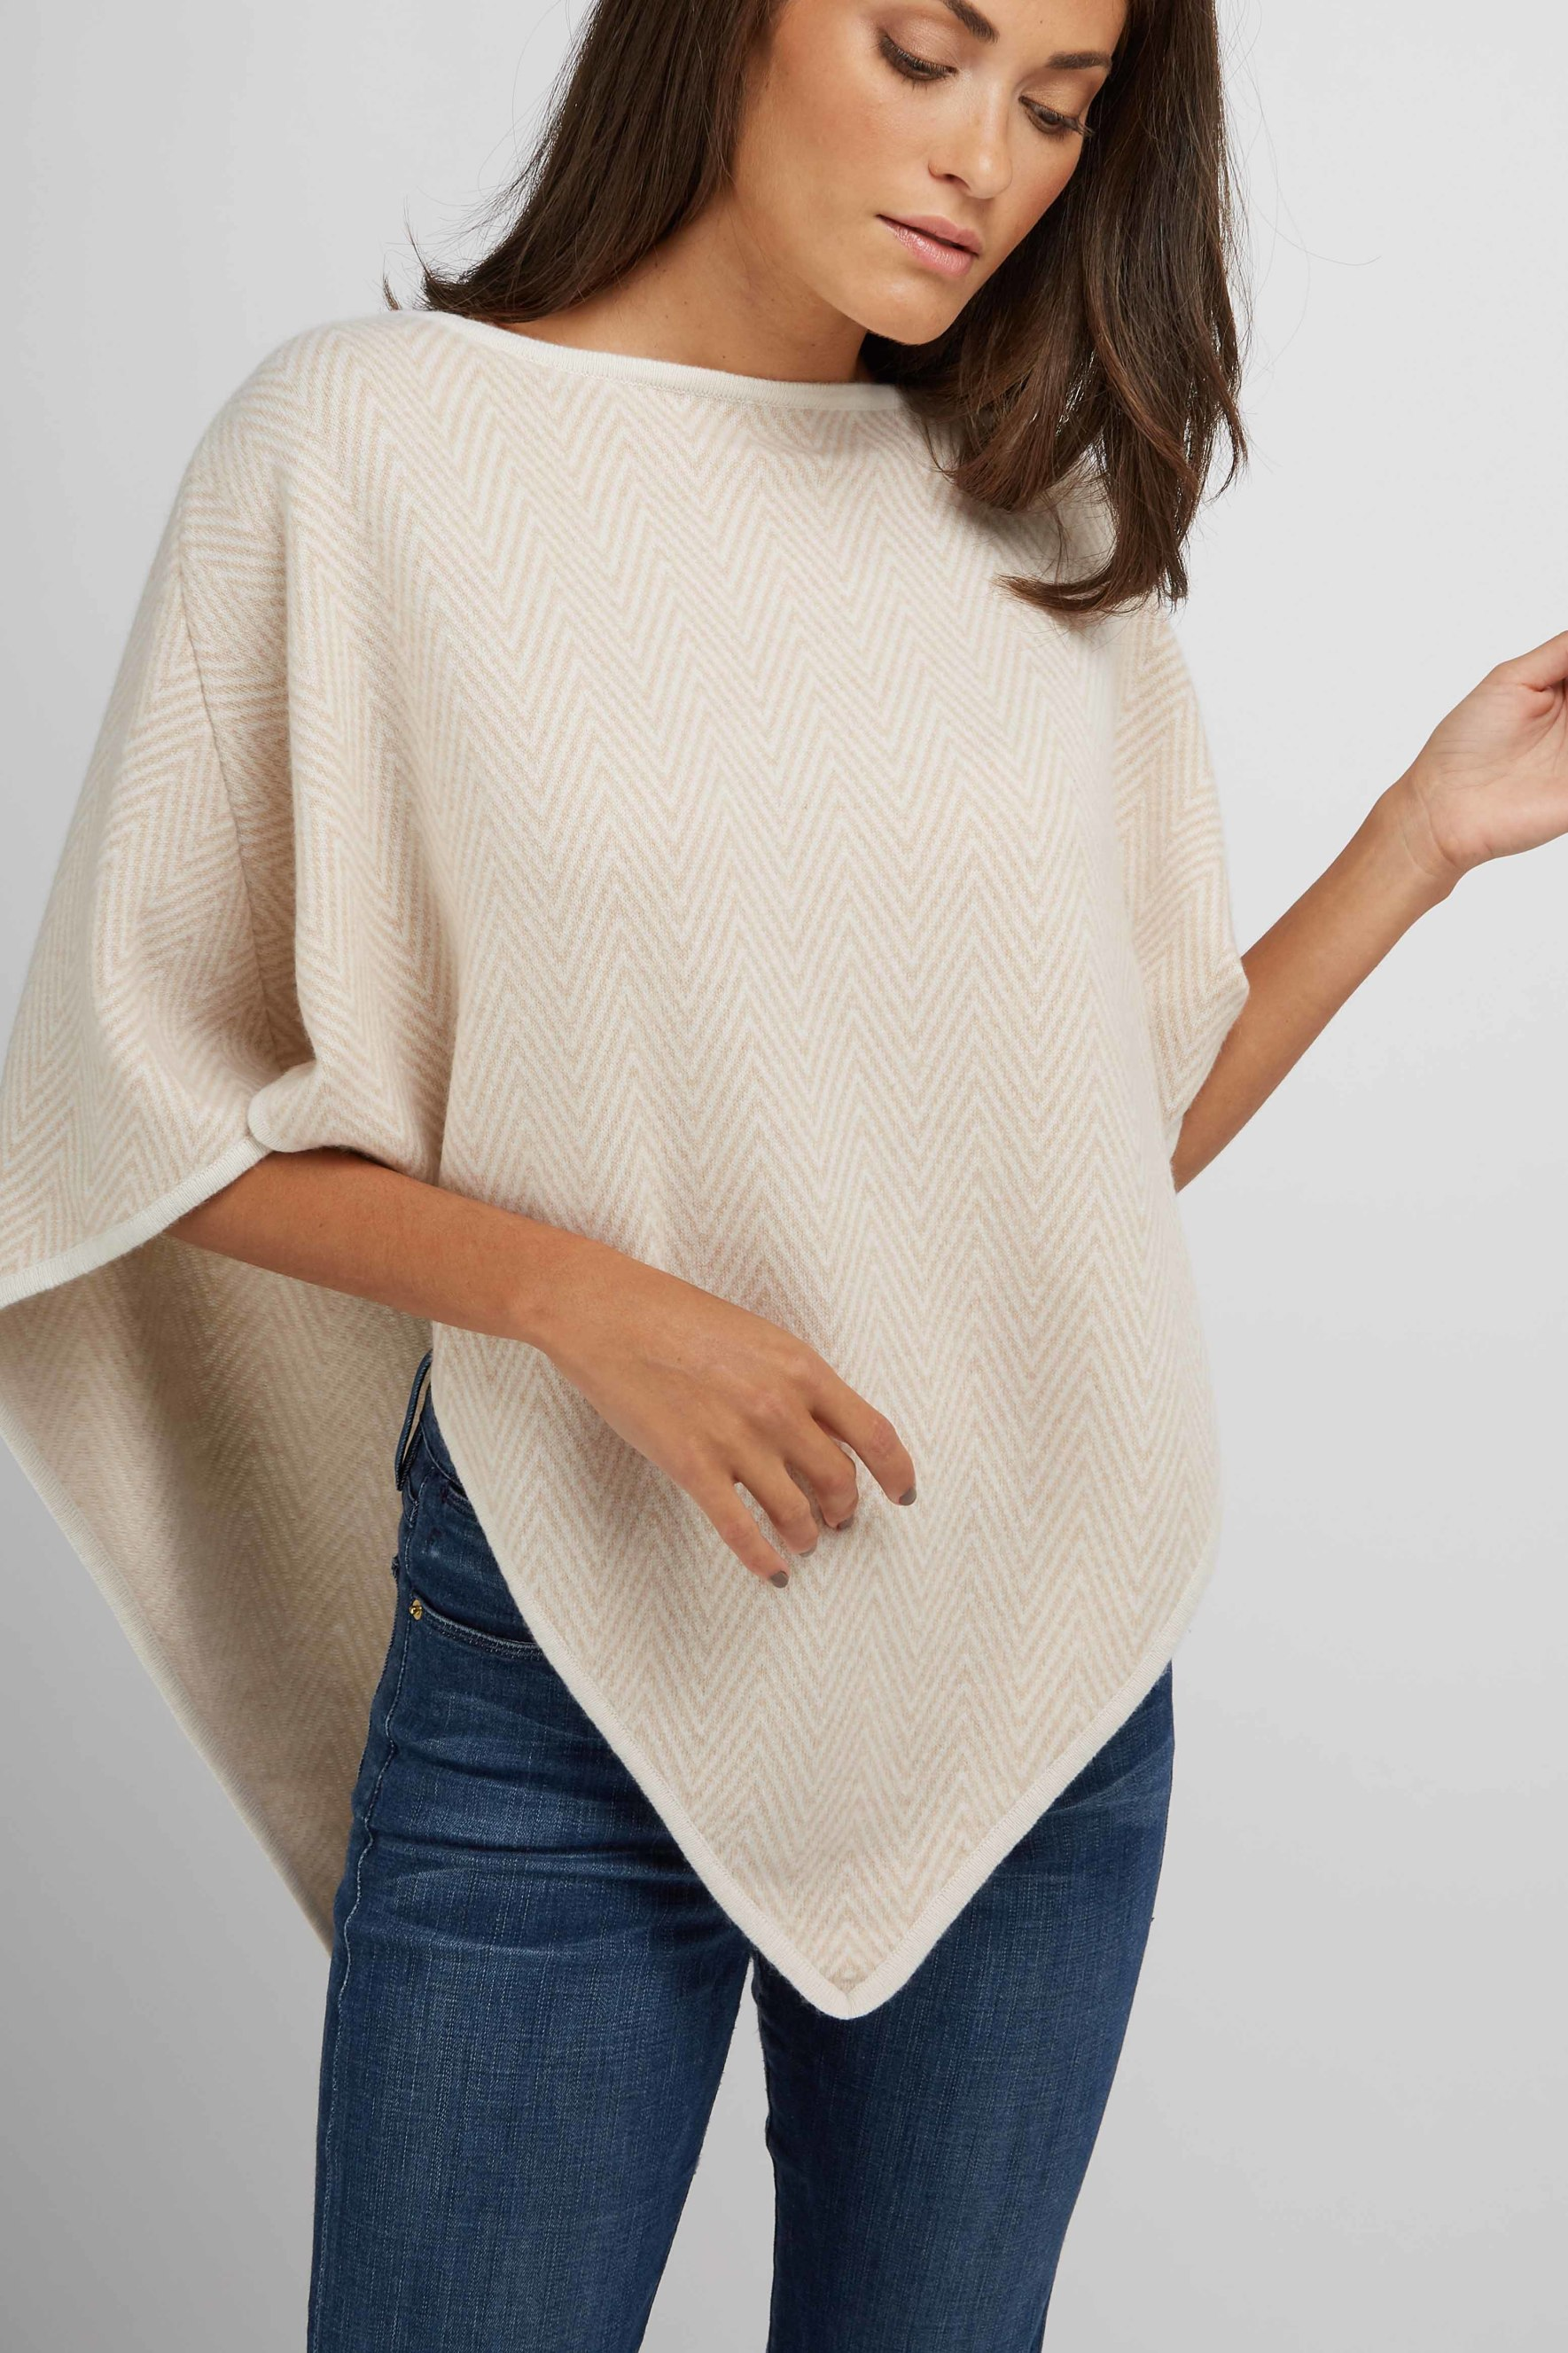 Herringbone Triangle Poncho